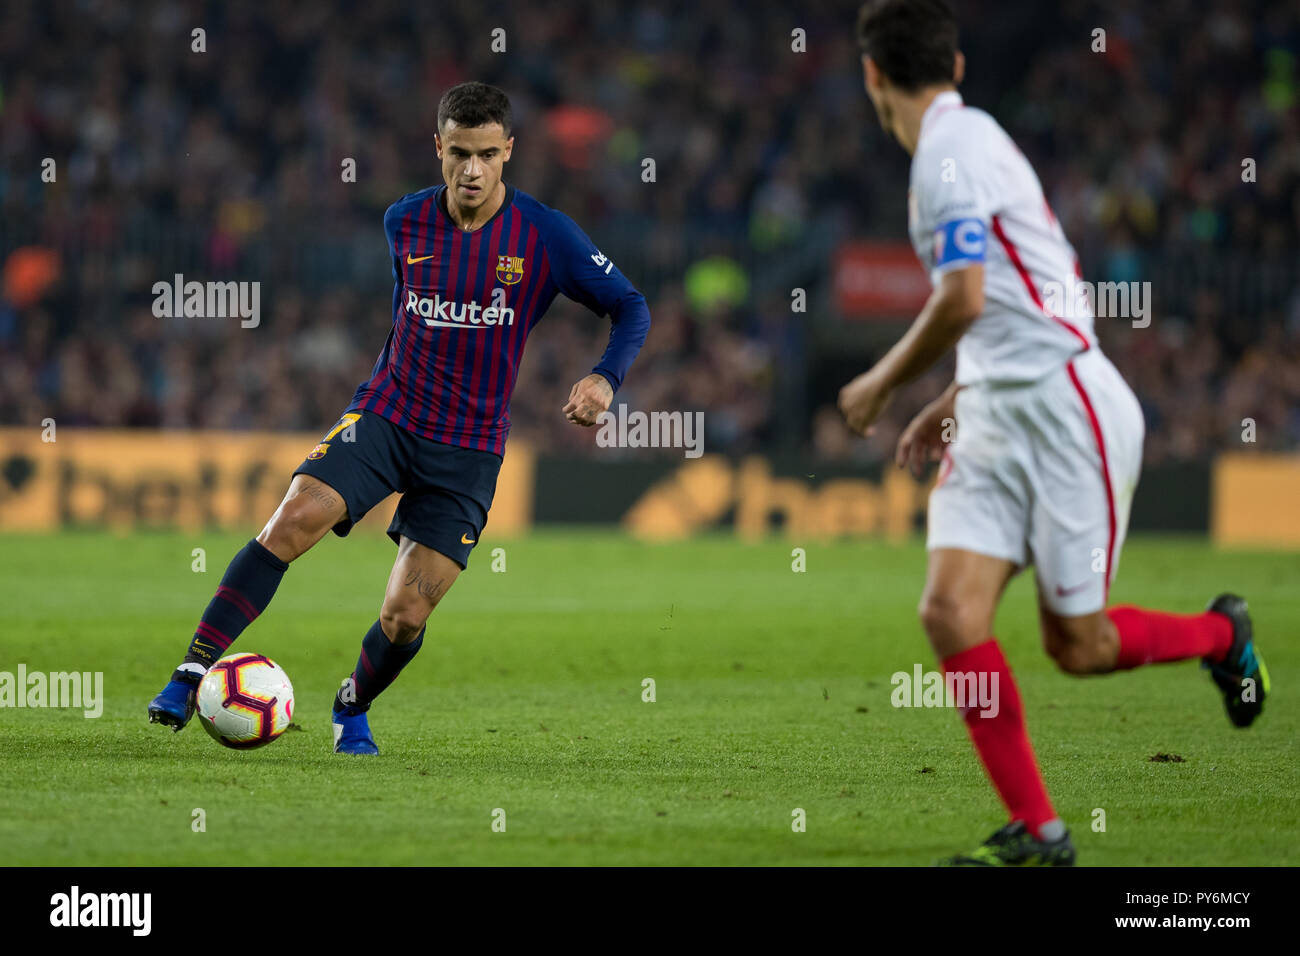 October 20th; Coutinho of FC Barcelona in action during the 2018/2019 LaLiga Santander Round 8 game between FC Barcelona and Sevilla FC at Camp Nou on - Stock Image